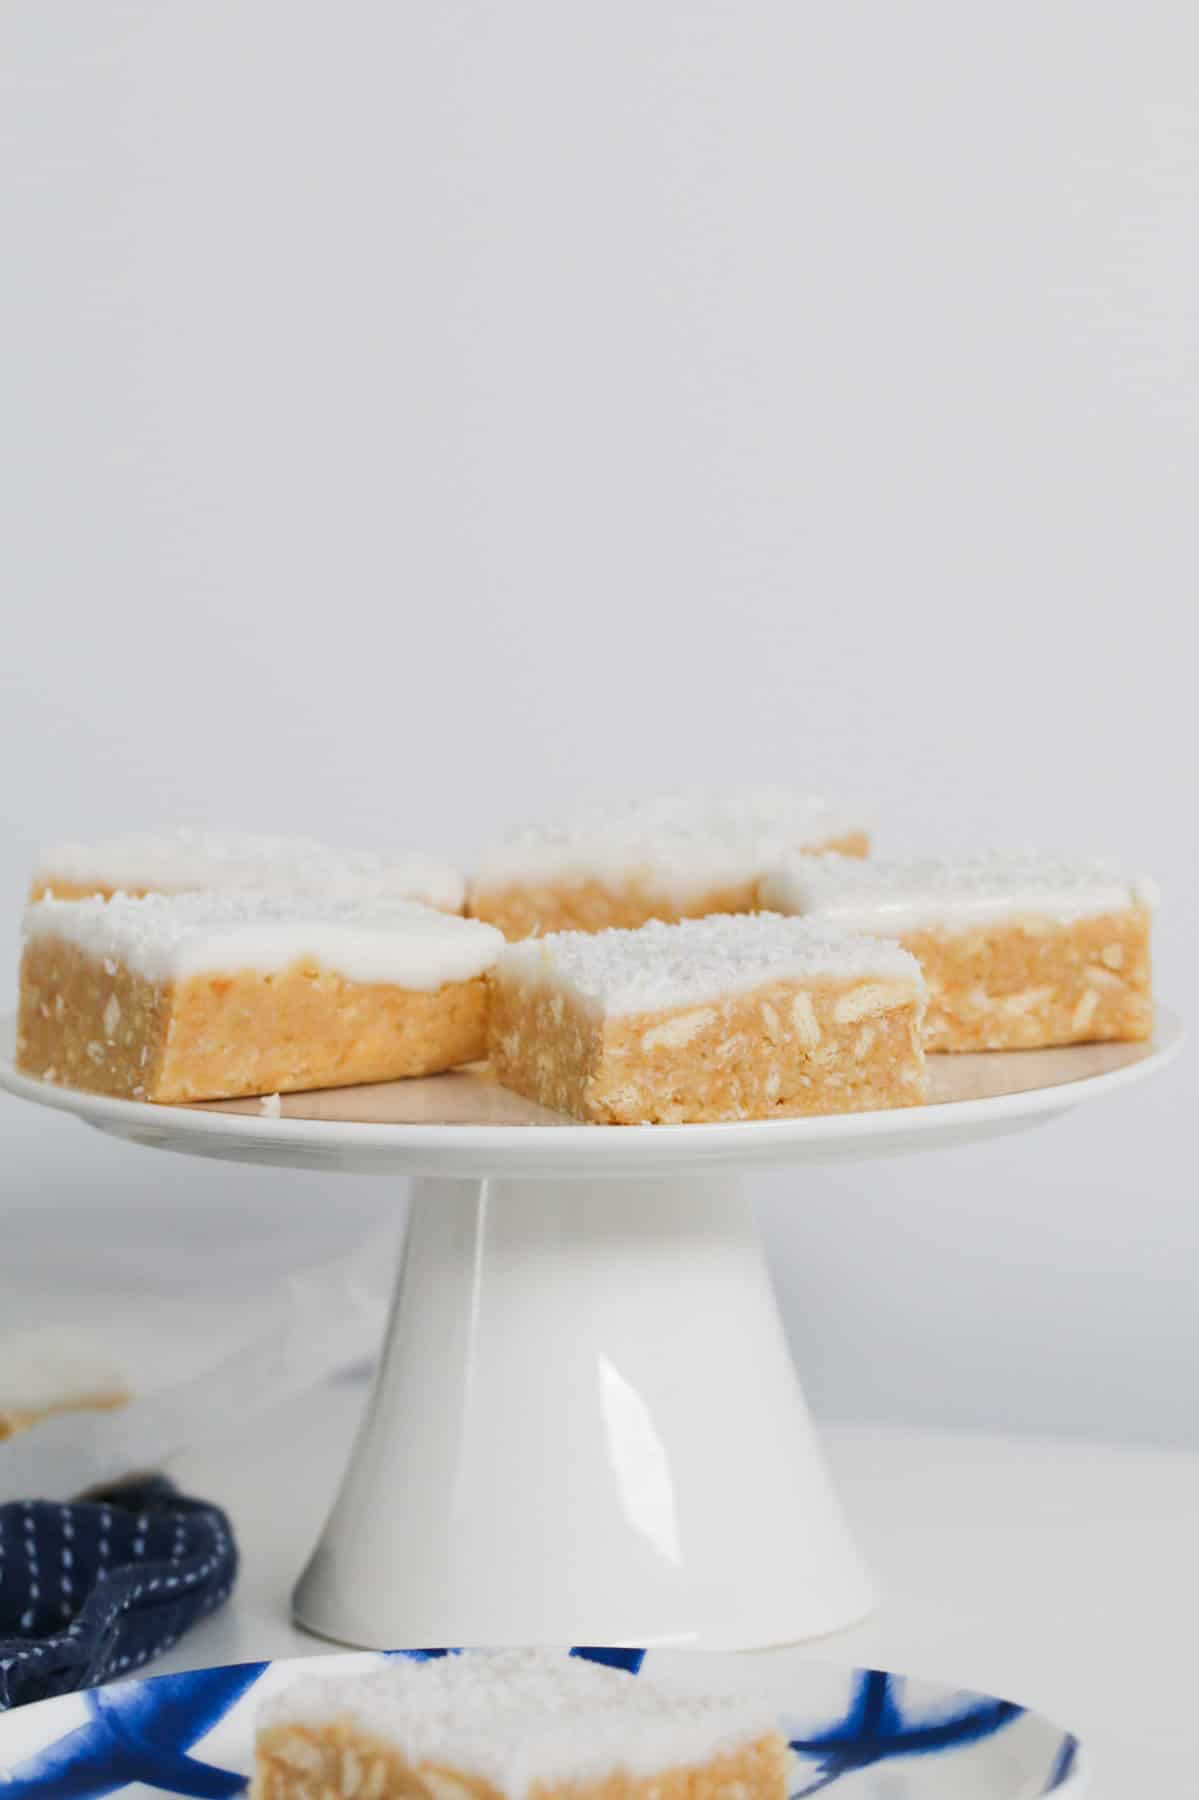 Pieces of lemon and coconut slice on a white cake stand.